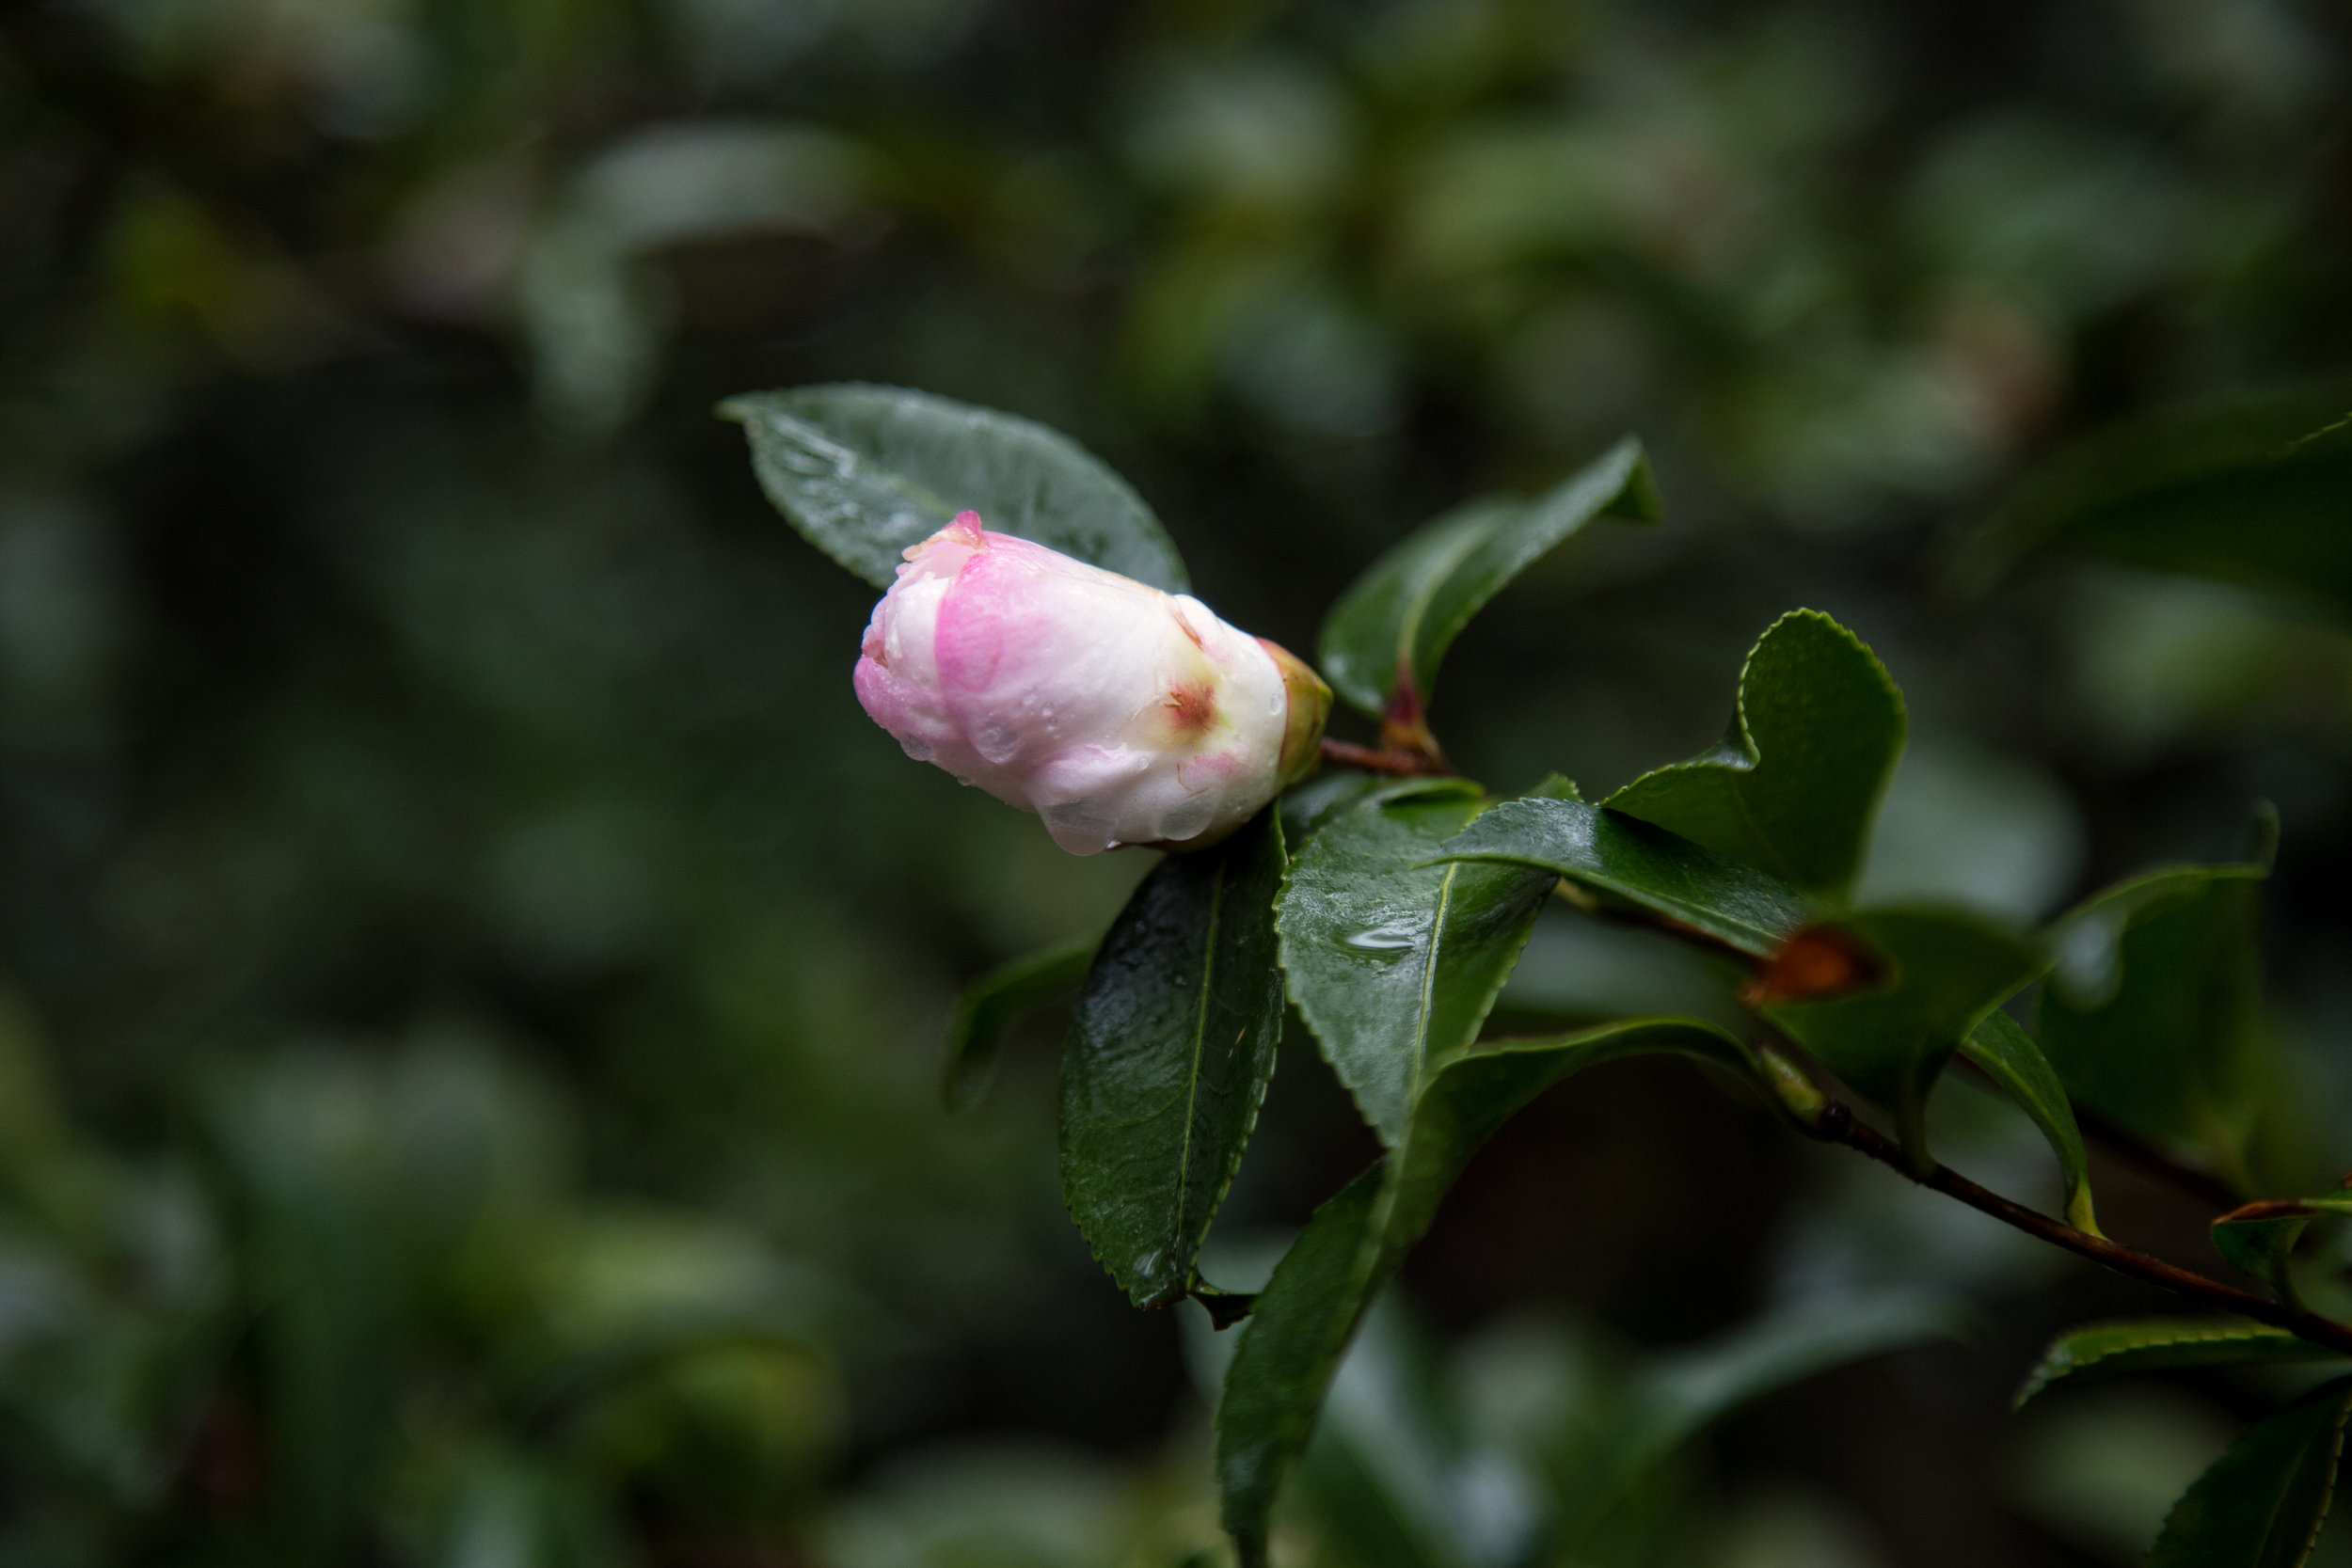 Camellia bud almost ready to open.